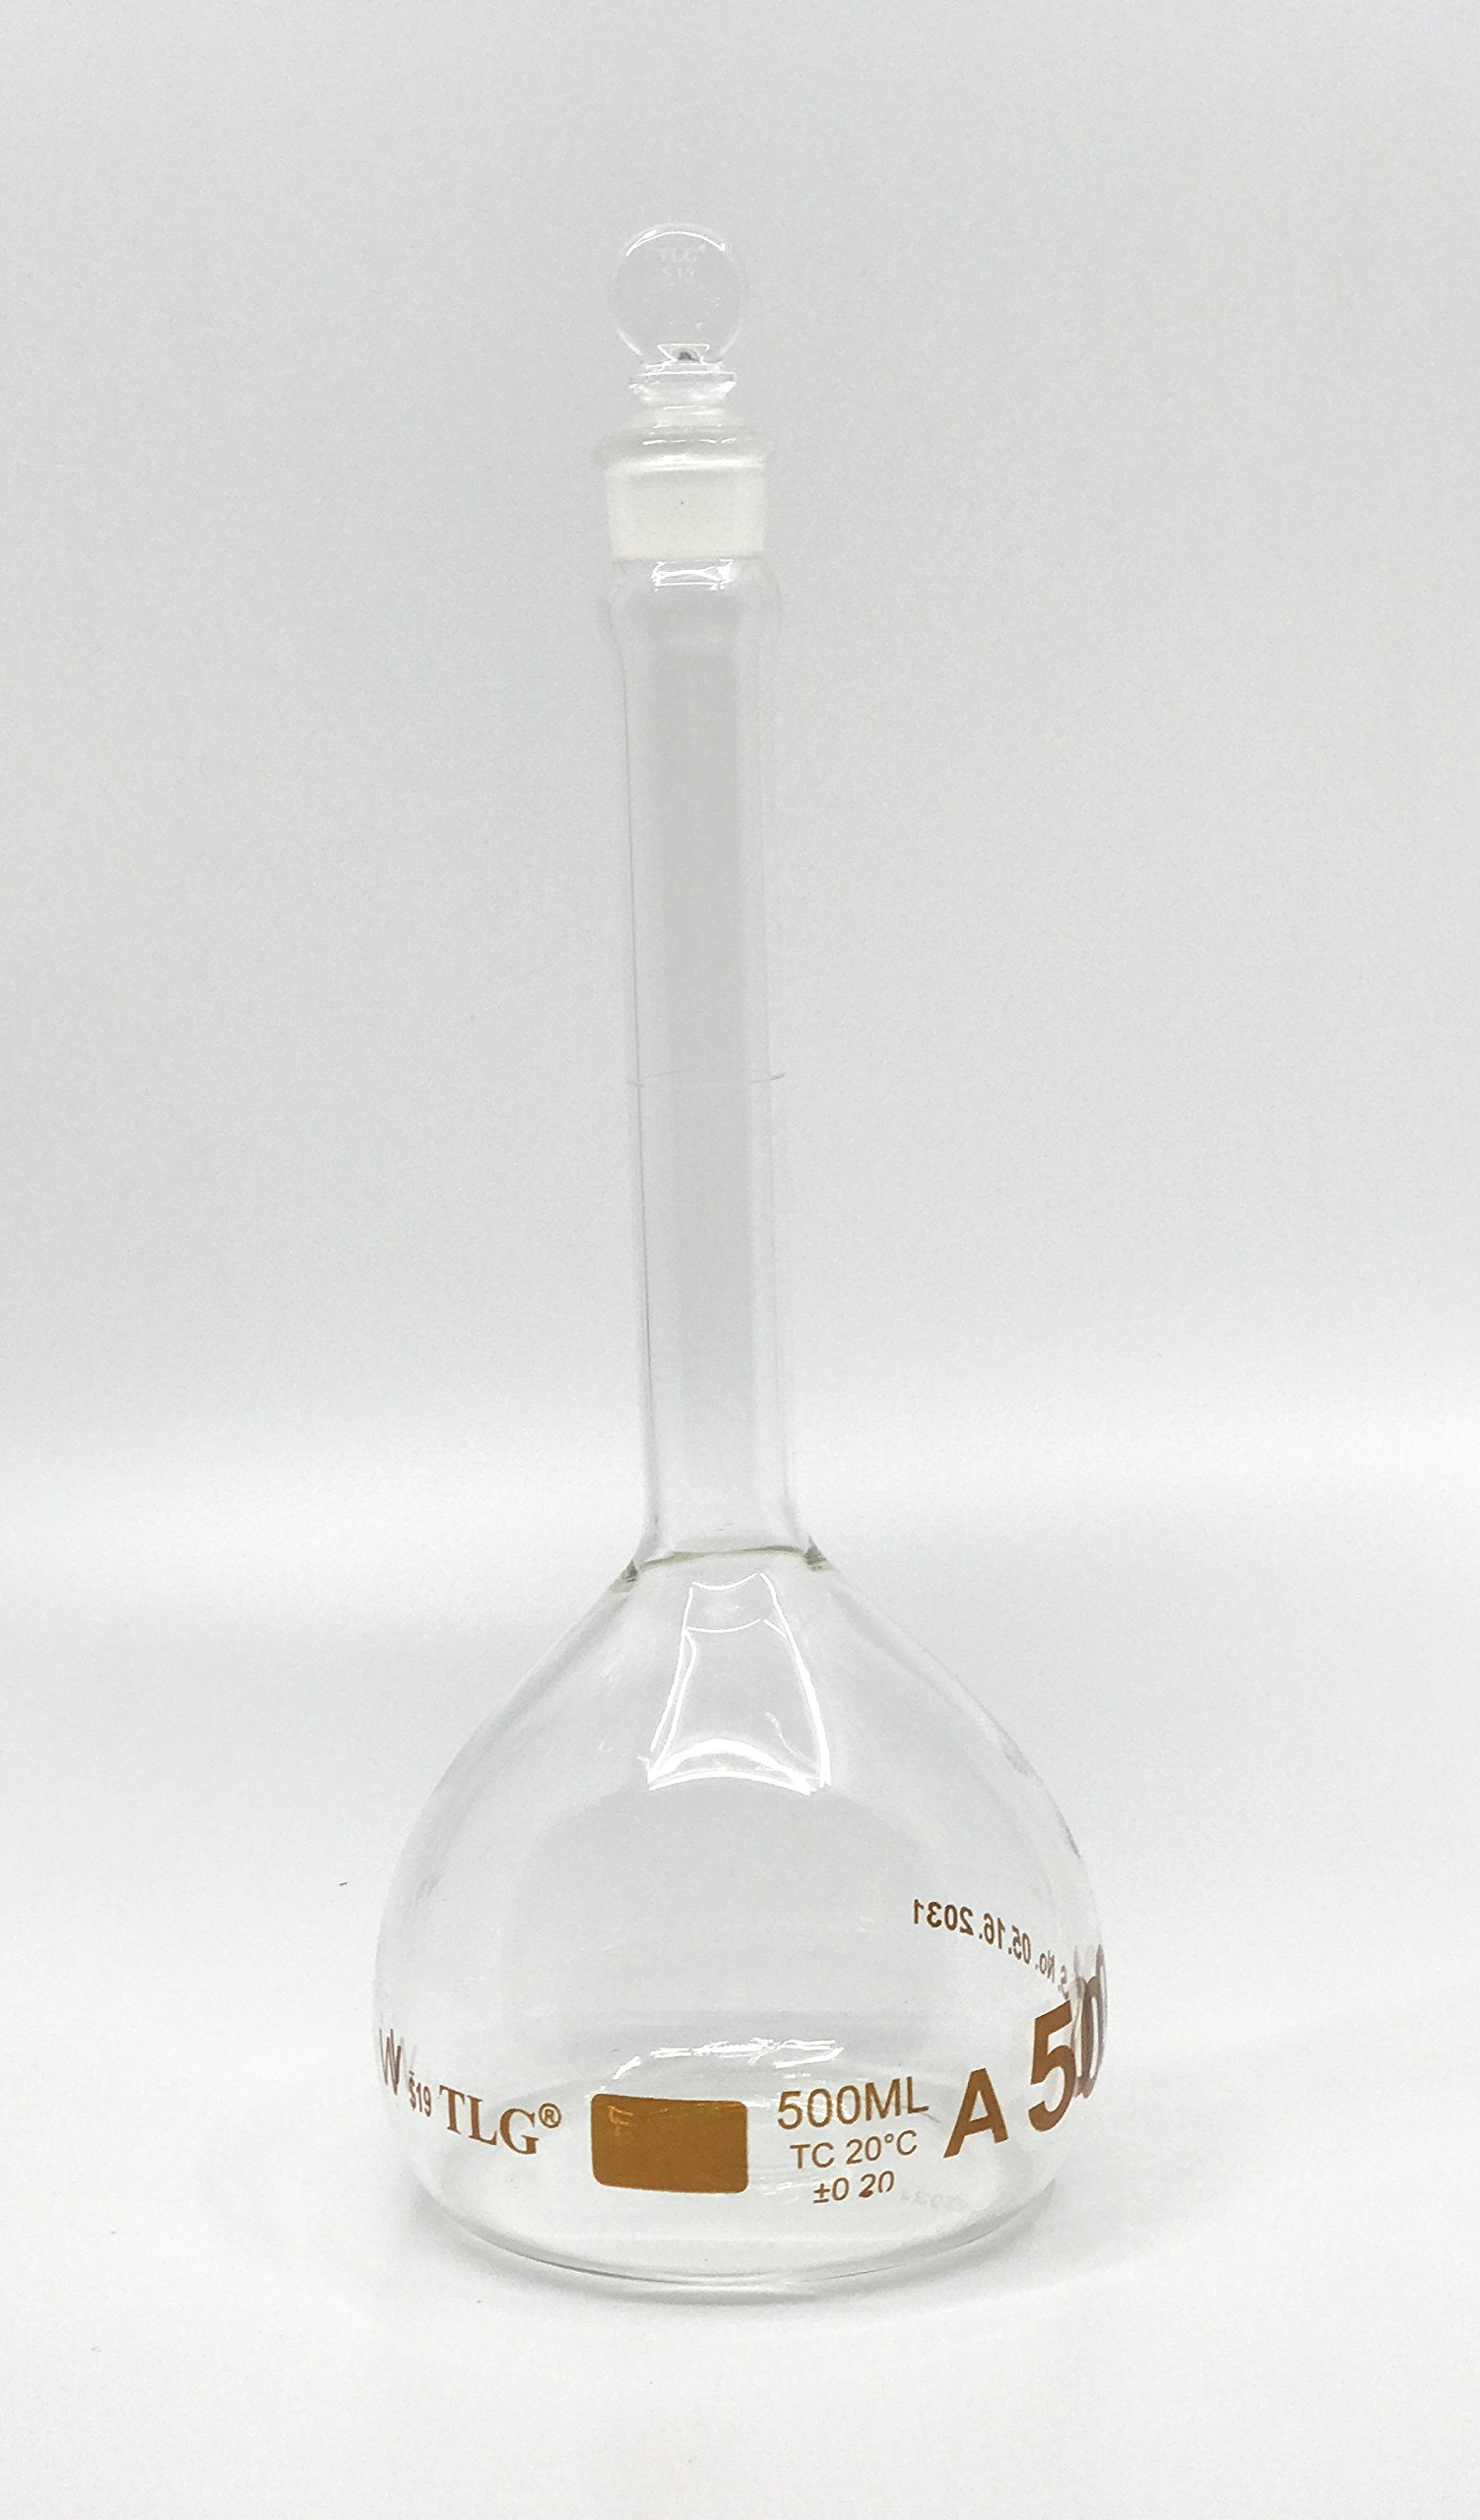 CHEM SCIENCE INC 129.303.08 Volumetric Flask with One Graduation Mark Class A, Wide Mouth, Capacity 500 mL, Glass Stopper Size # 19